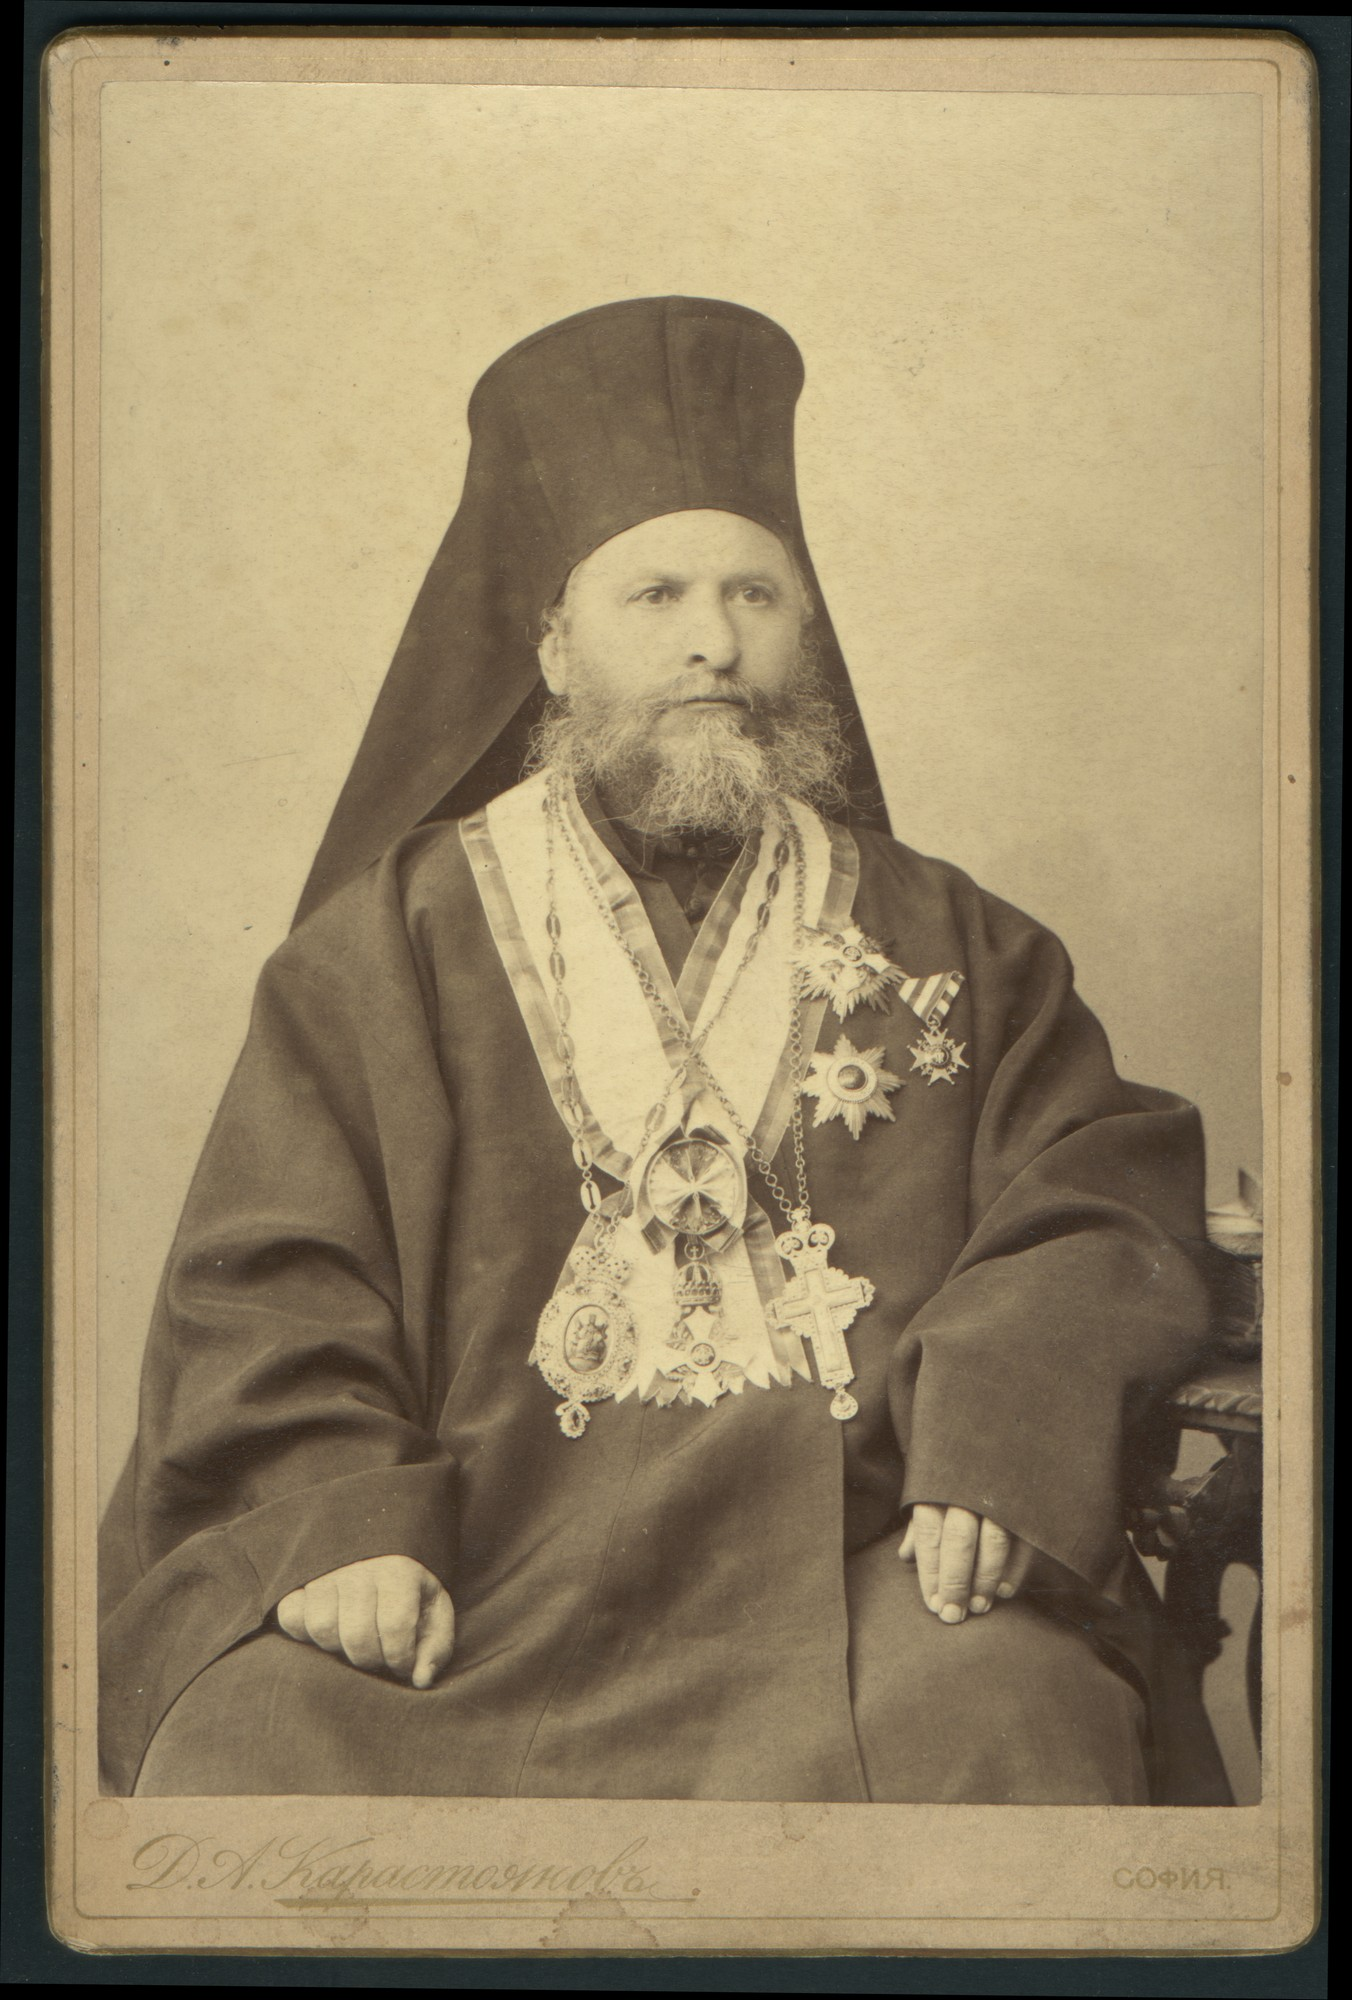 Studio portrait of Bishop Dositey Samokovski, © St. Cyril and St. Methodius National Library